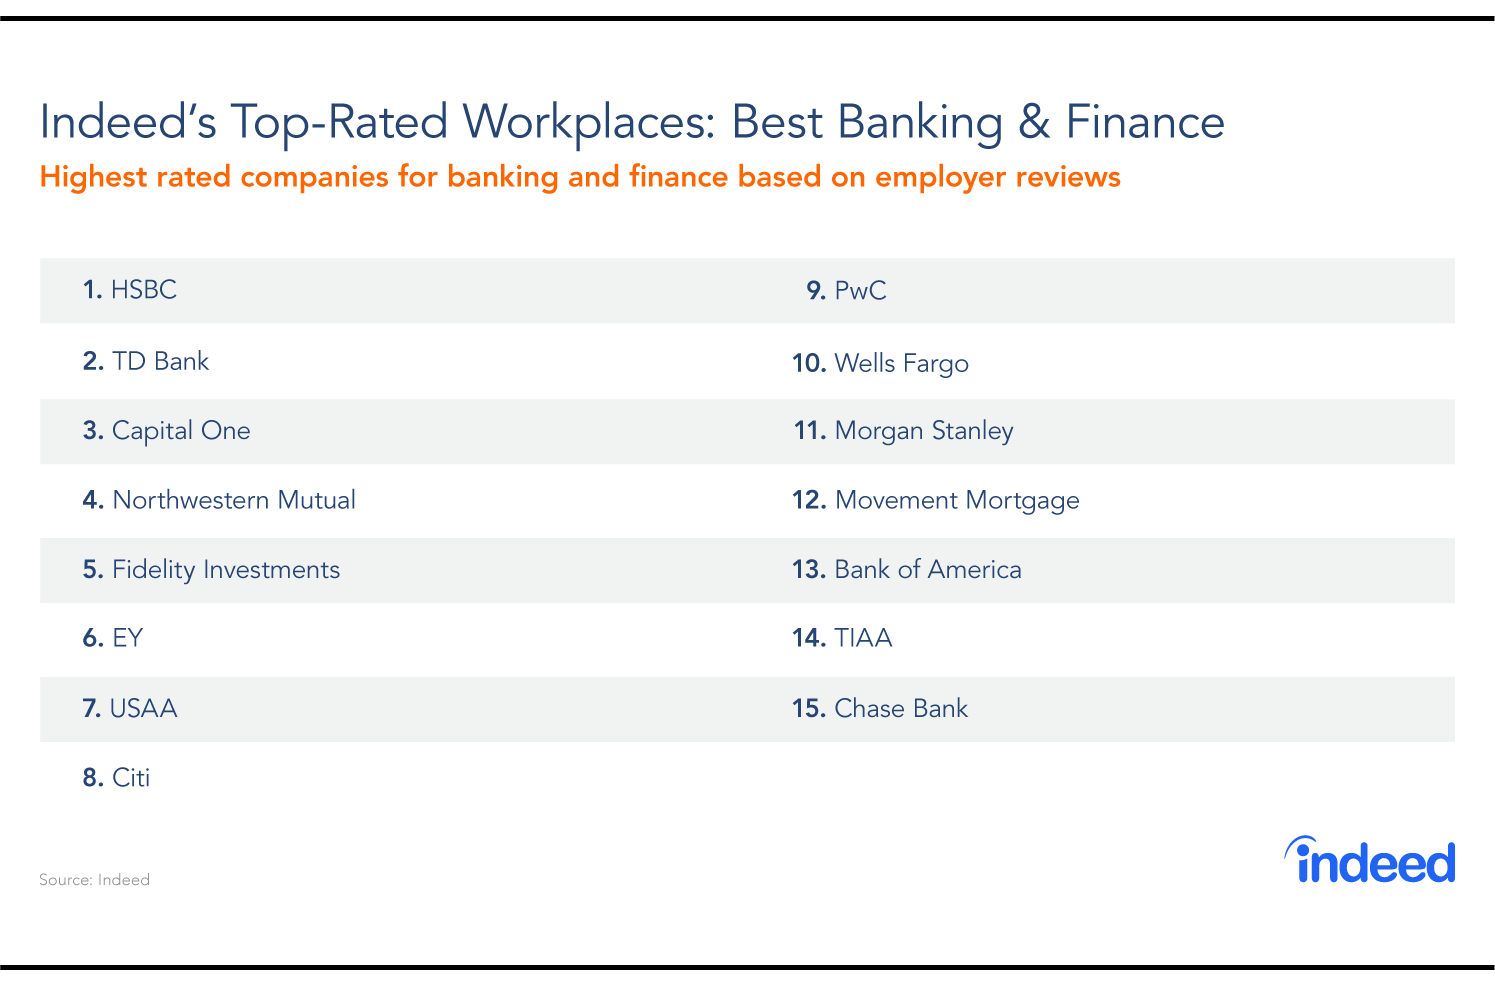 Table compiled of the 15 top-rated banking and financial service workplaces to work for in 2018.